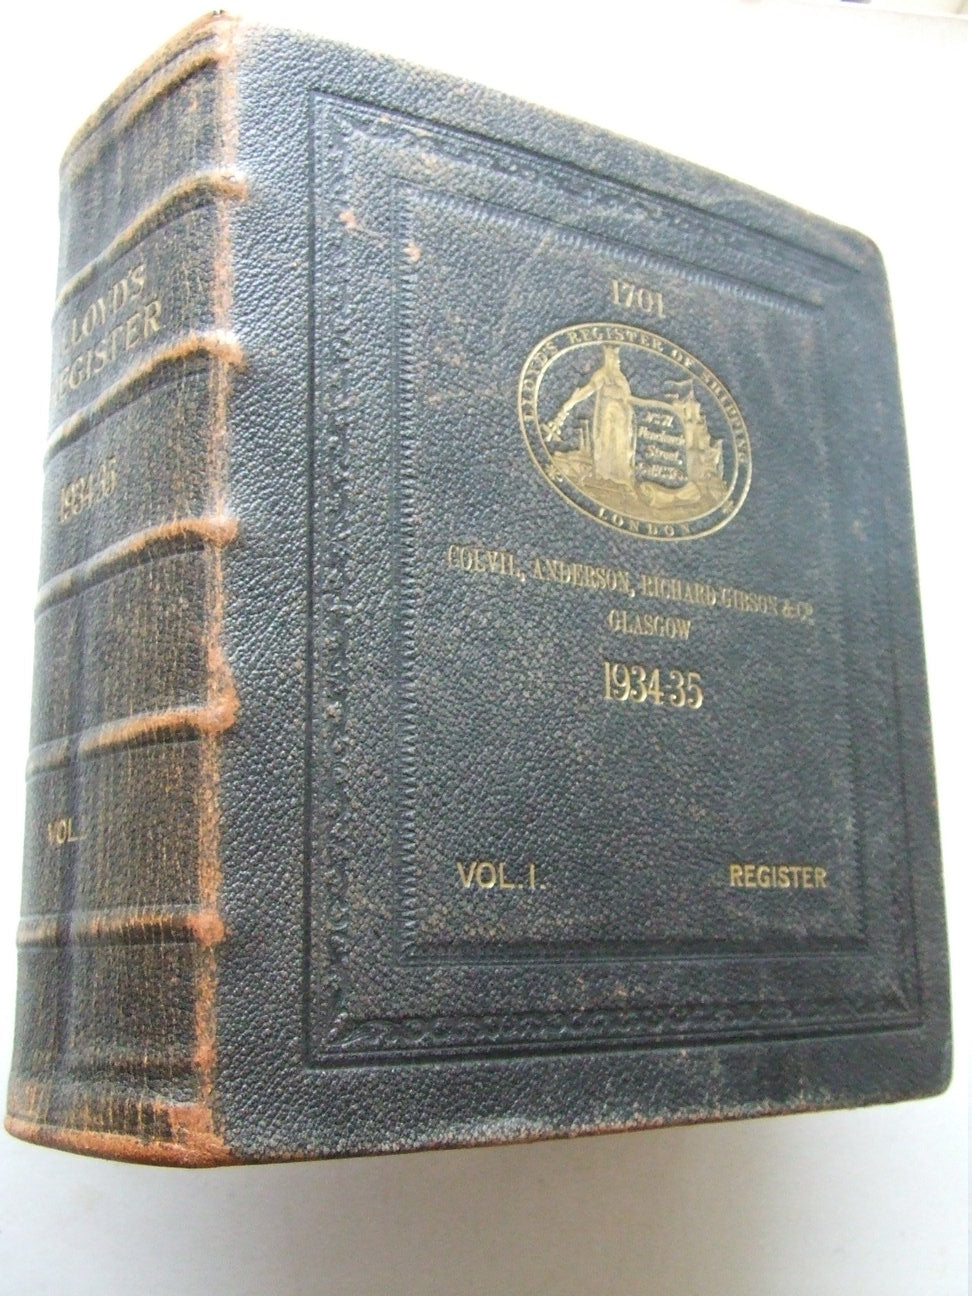 Lloyd's Register of Shipping....from 1st July 1934 to 30th June 1935